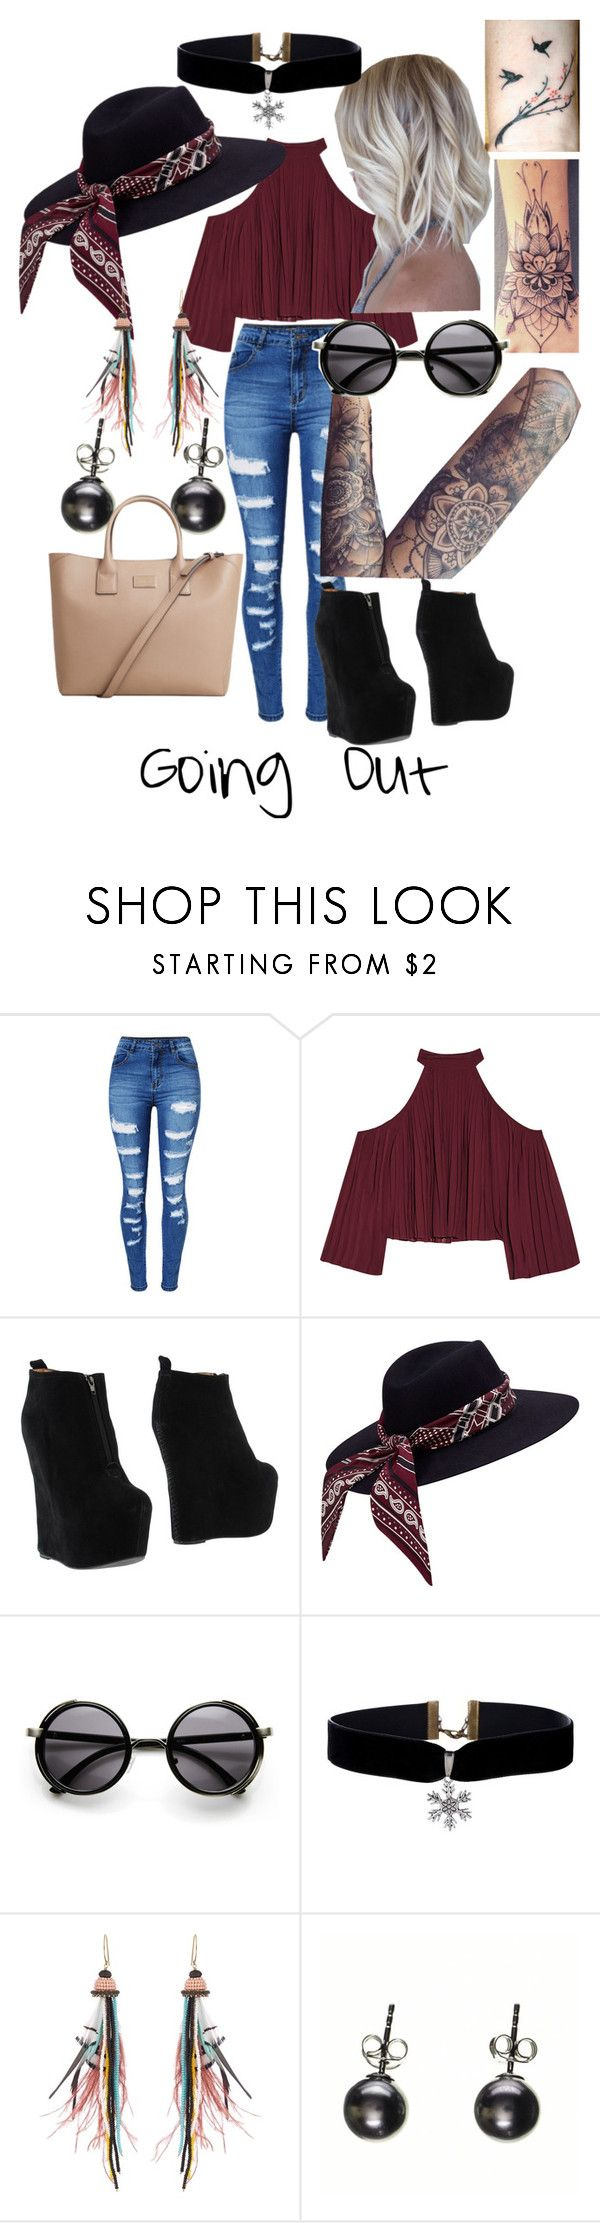 """""""Going Out"""" by j3029208g on Polyvore featuring WithChic, W118 by Walter Baker, Jeffrey Campbell, Etro, Black and MANGO"""